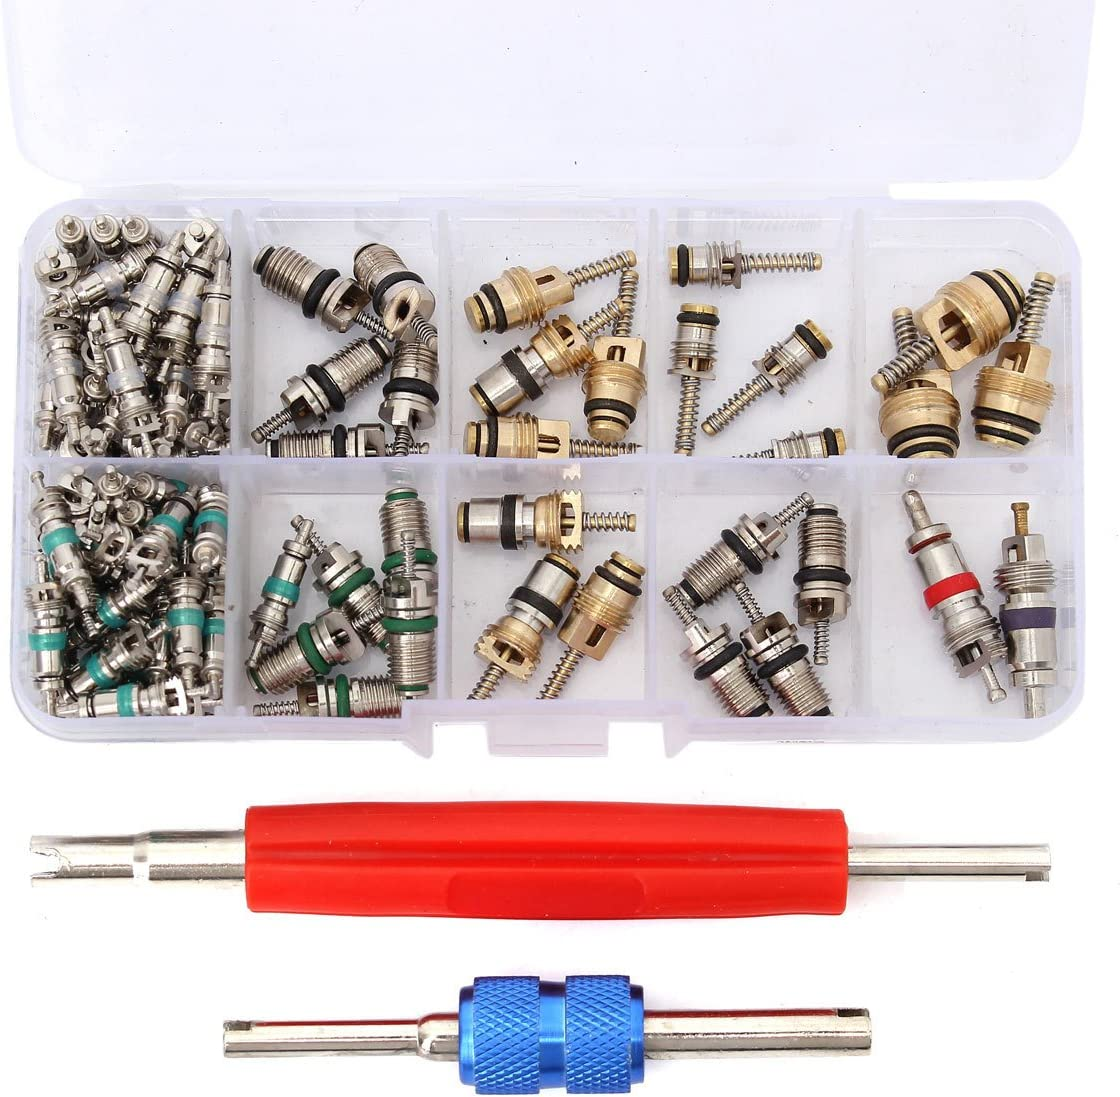 A//C Valve Core Remover Tool Car Air Conditioning Refrigeration Repair Kit for R12 R134A AC HVAC